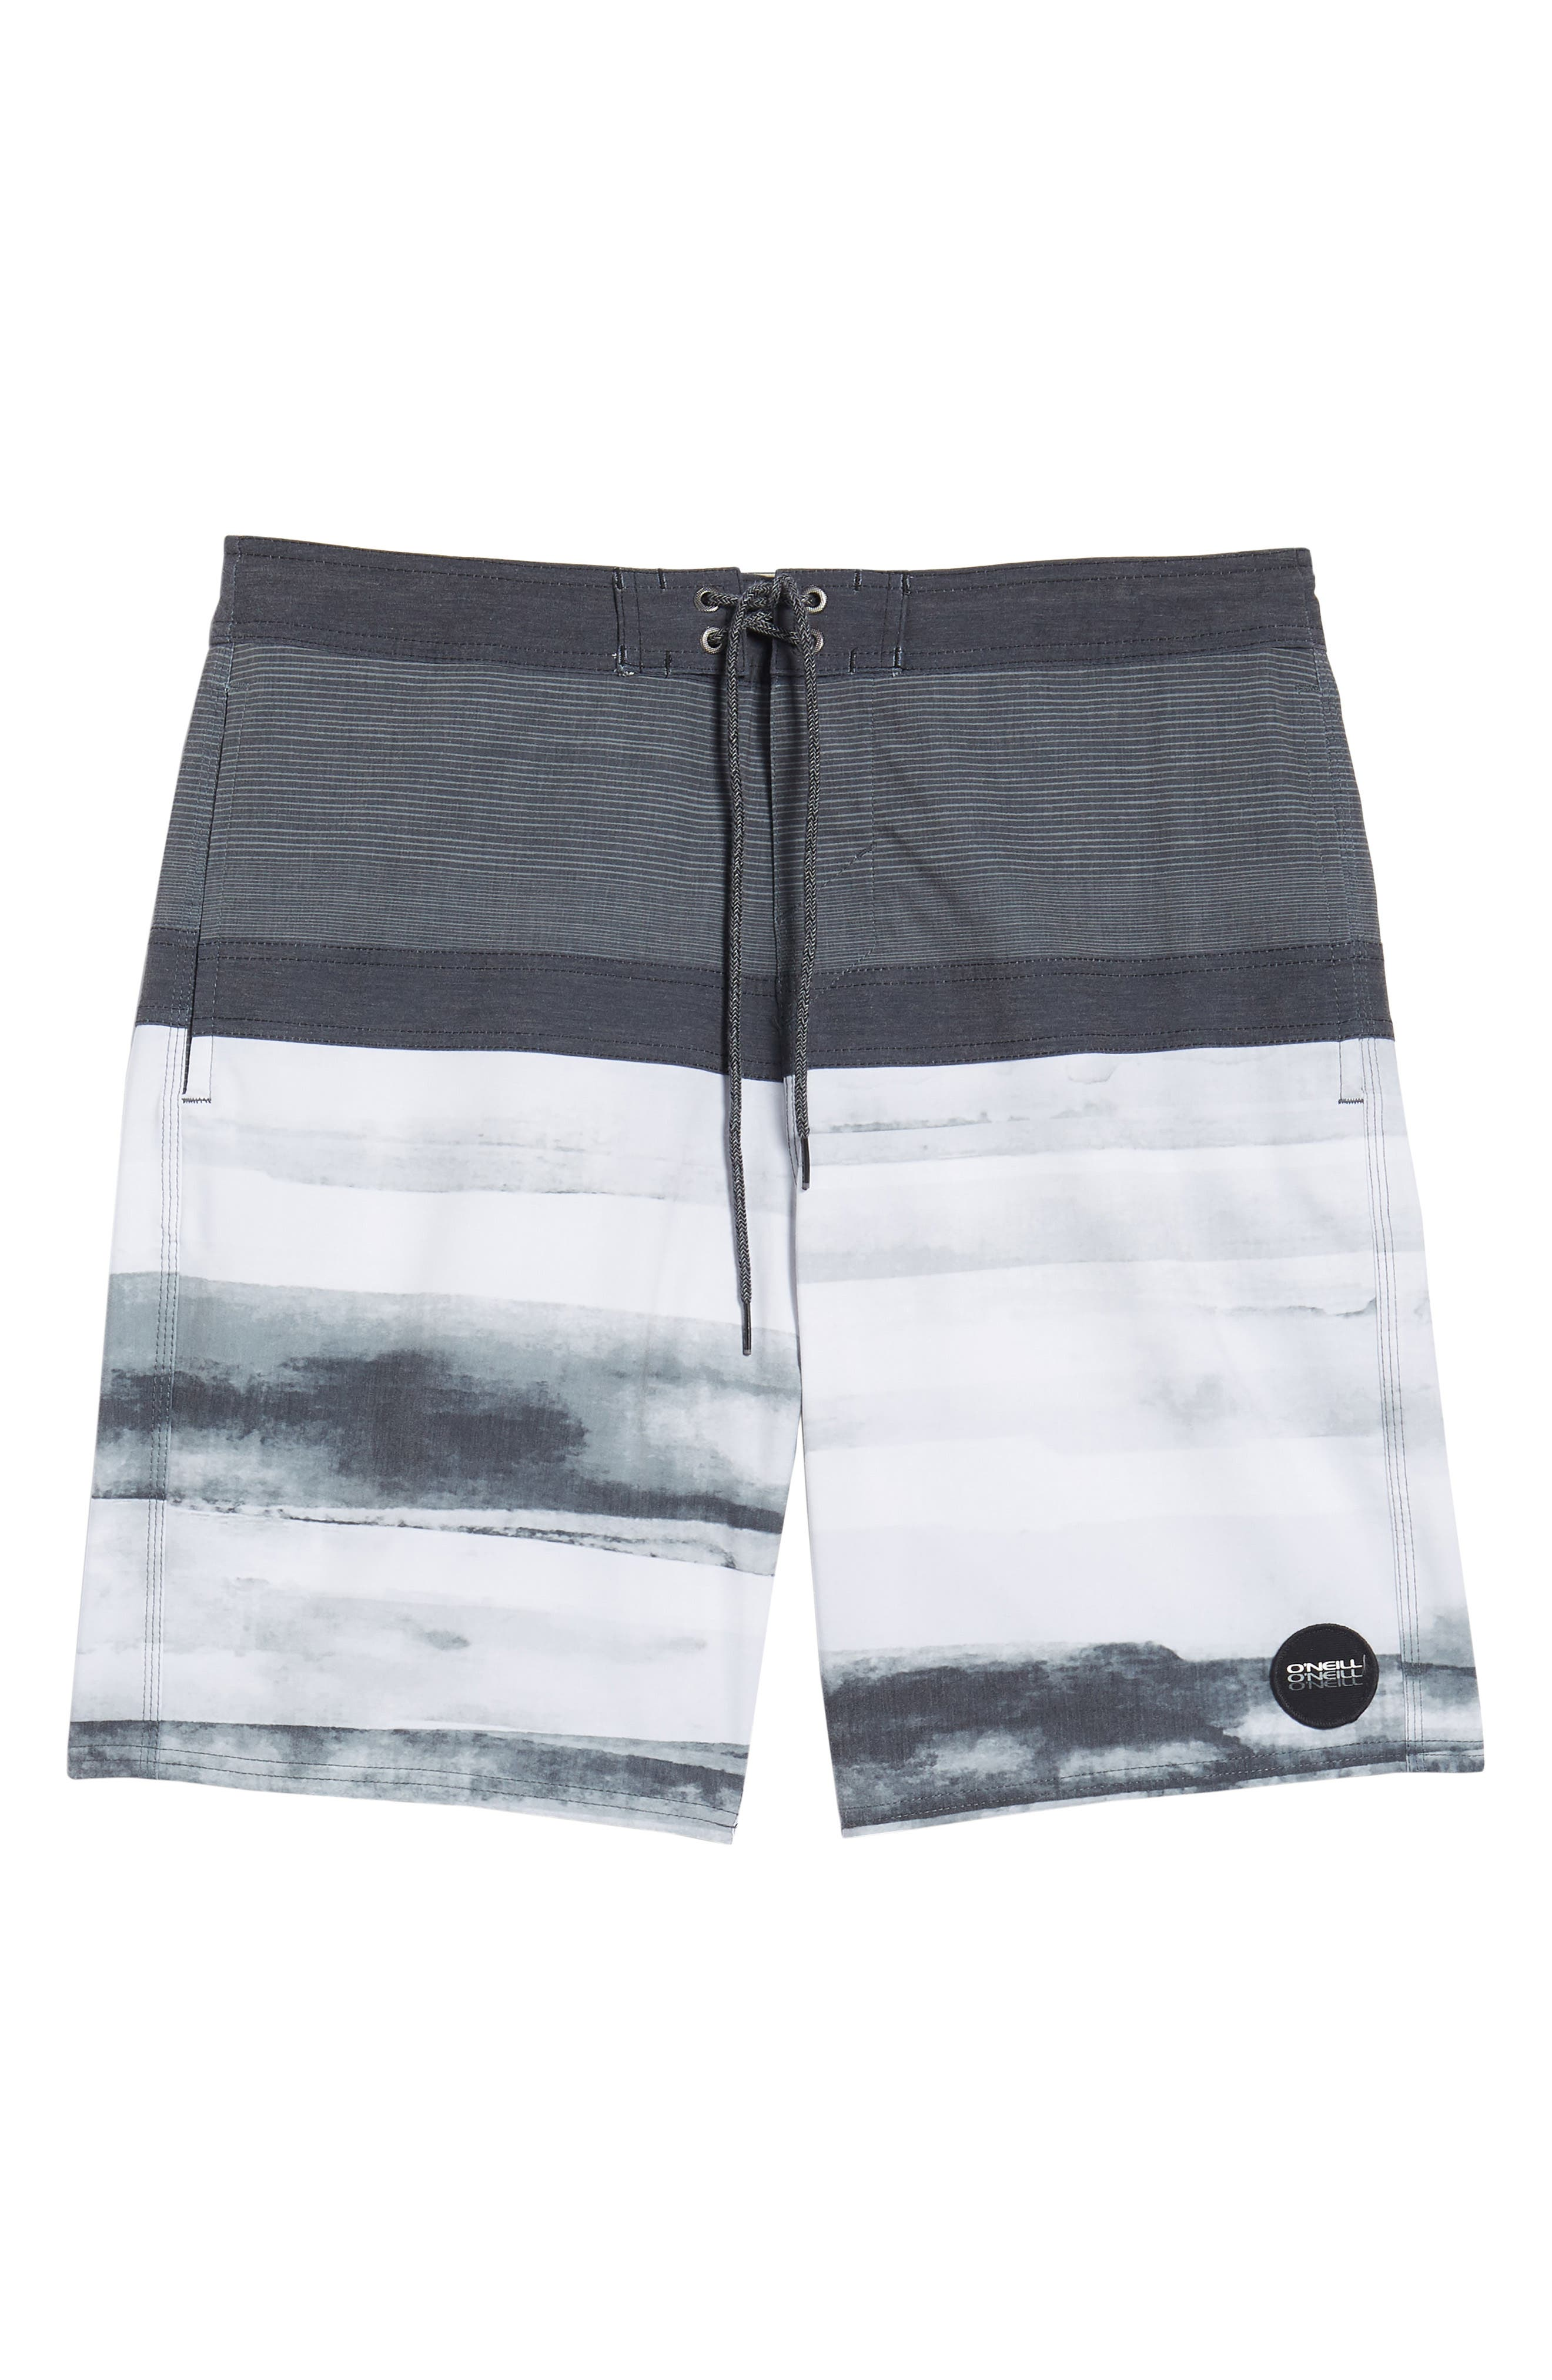 Breaker Cruzer Board Shorts,                             Alternate thumbnail 6, color,                             001